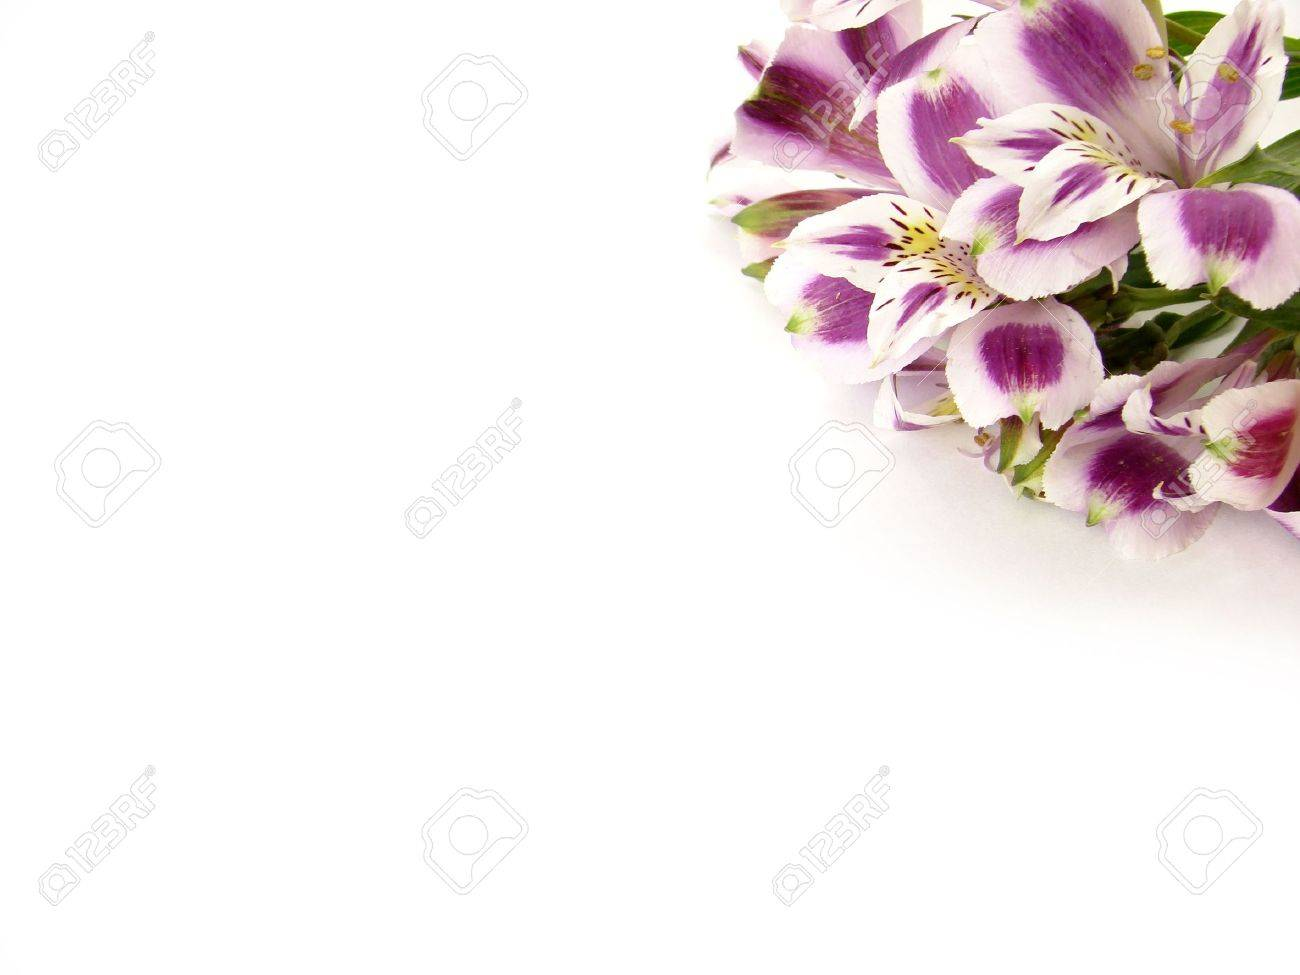 White and Purple Alstroemeria flowers card background - space for text Stock Photo - 3814151